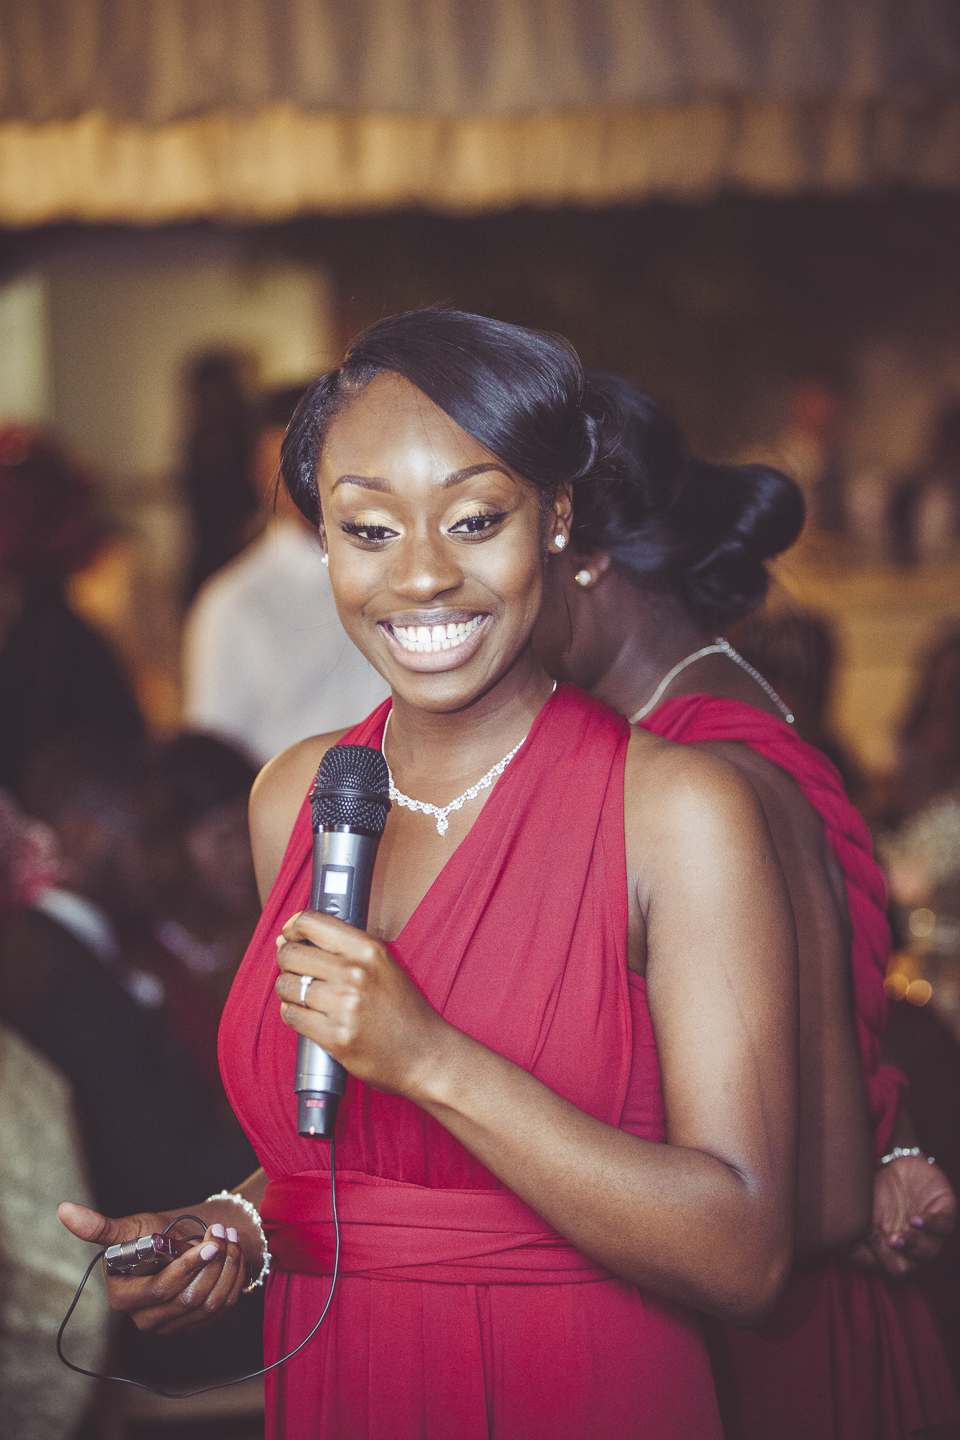 northbrook park wedding filled with culture music and